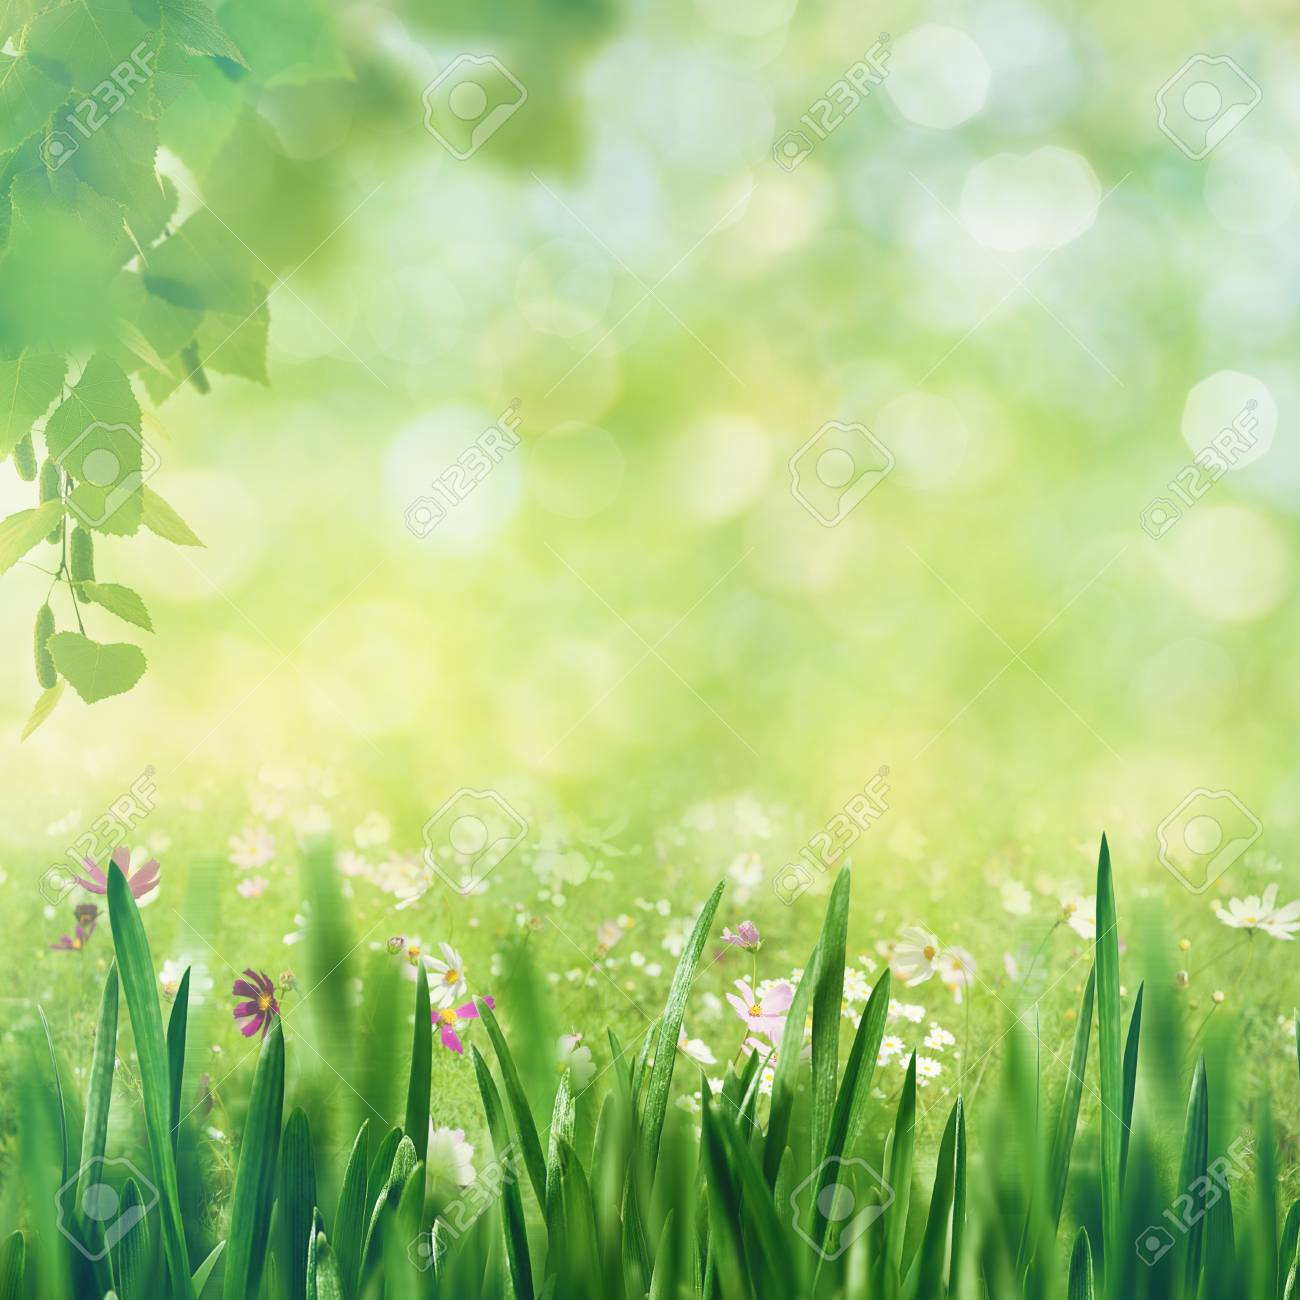 Beech Fores Abstract Spring Backgrounds With Tree And Green Grass Stock Photo